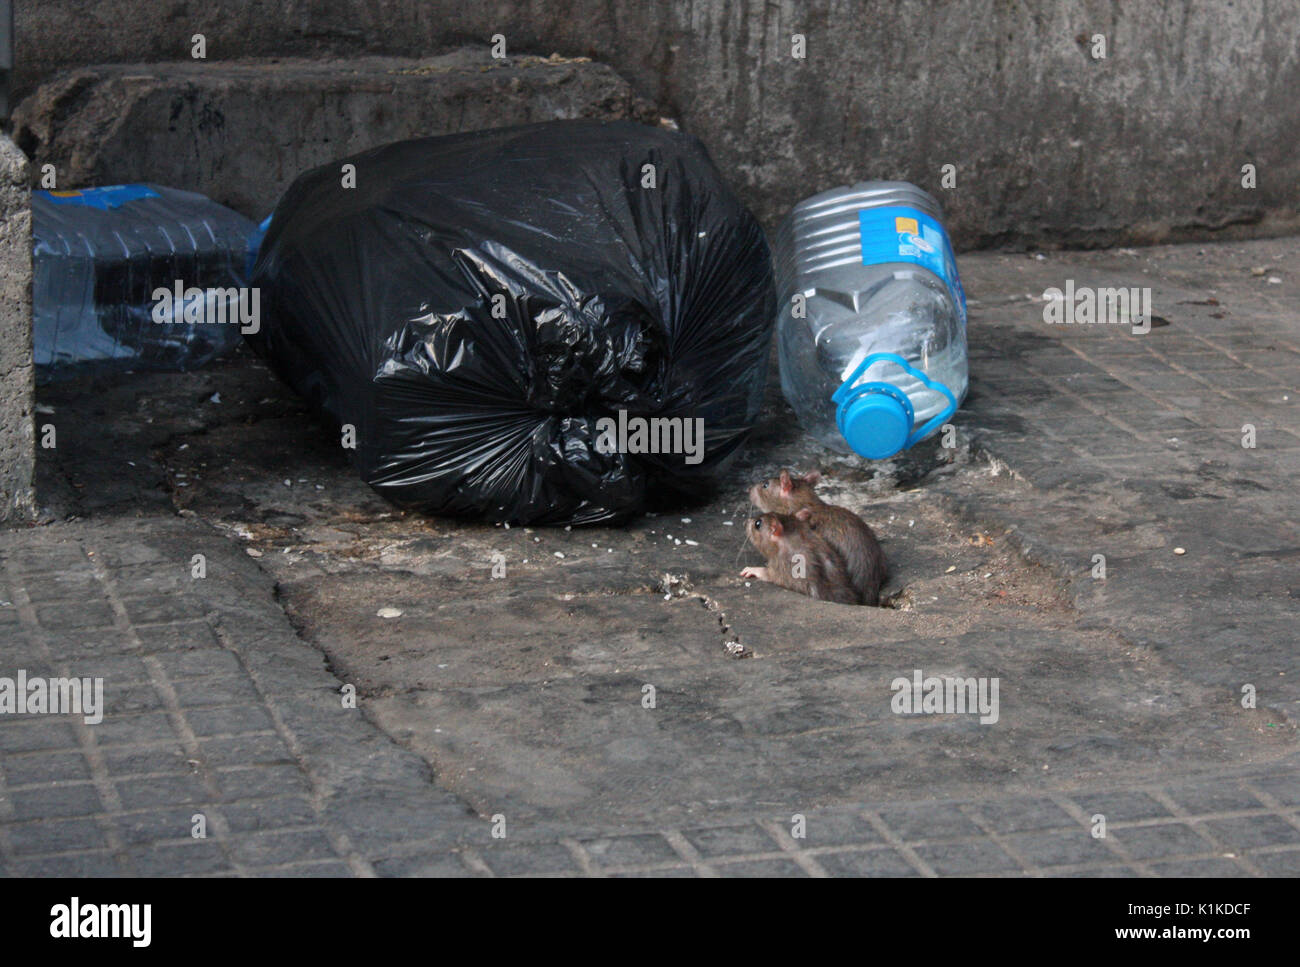 Two rats in the city examining a garbage bag - Stock Image